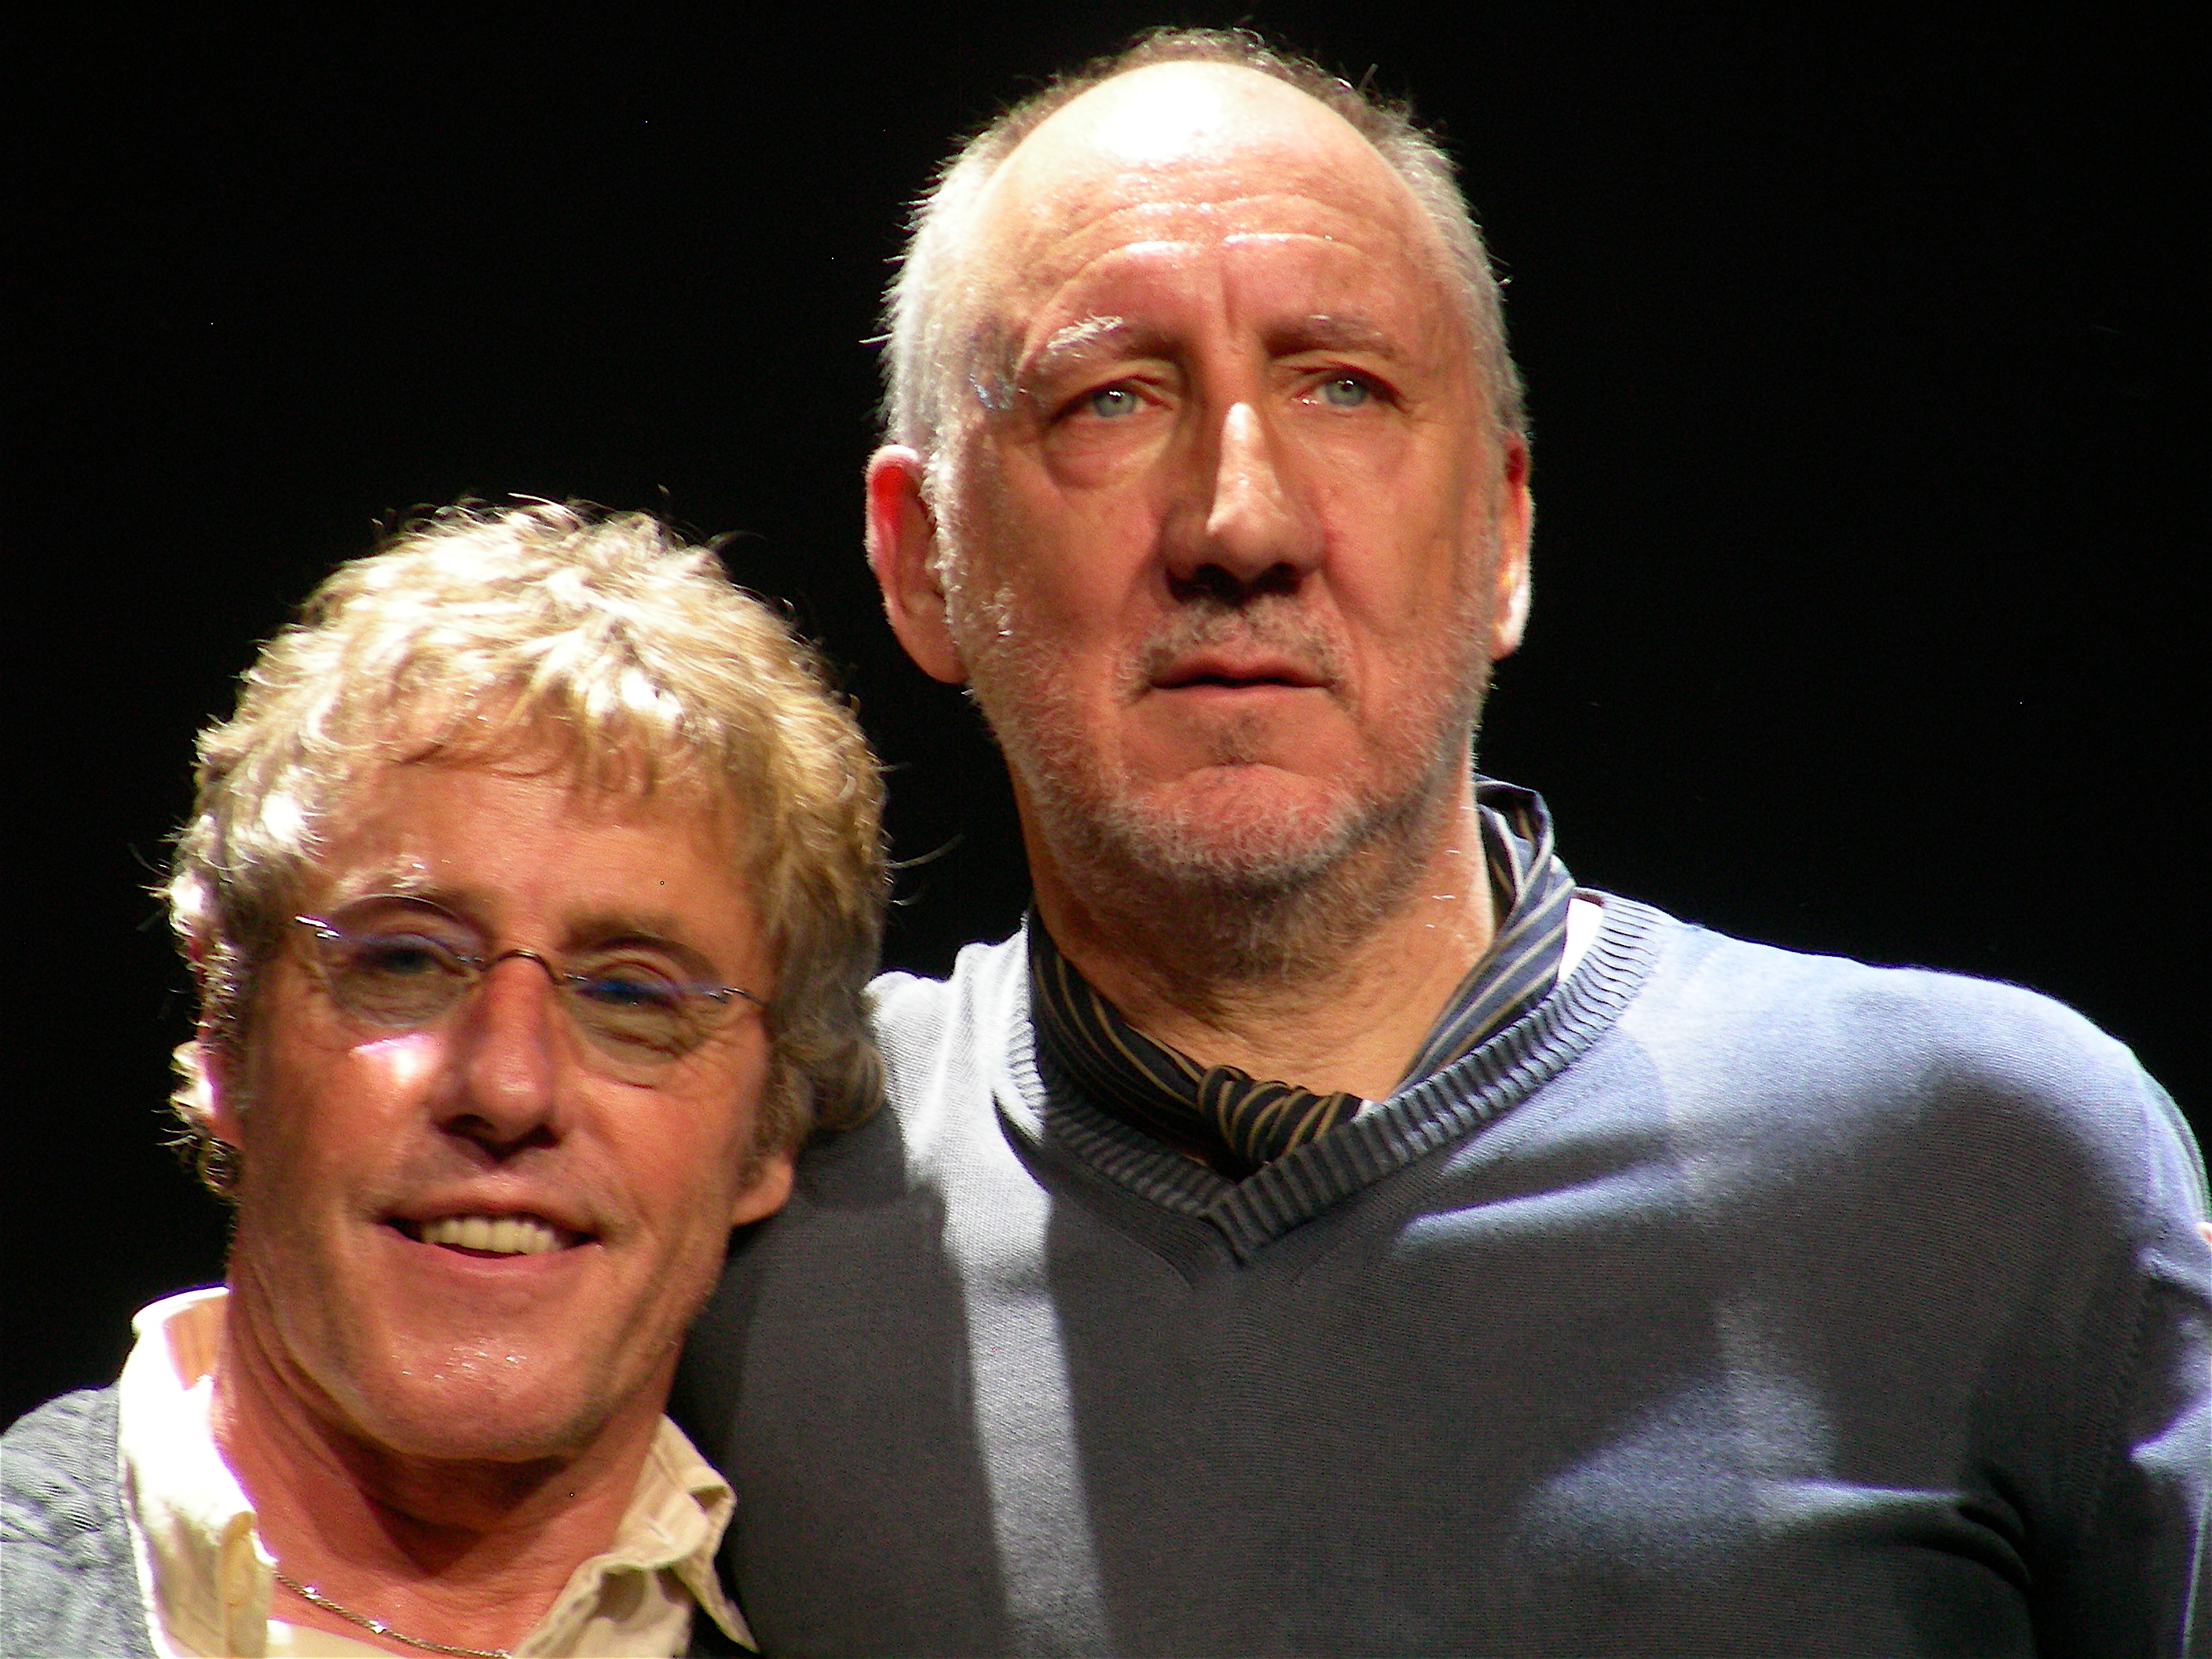 Pete Townshend / Roger Daltrey - Overture From Tommy / Listening To You / See Me Feel Me